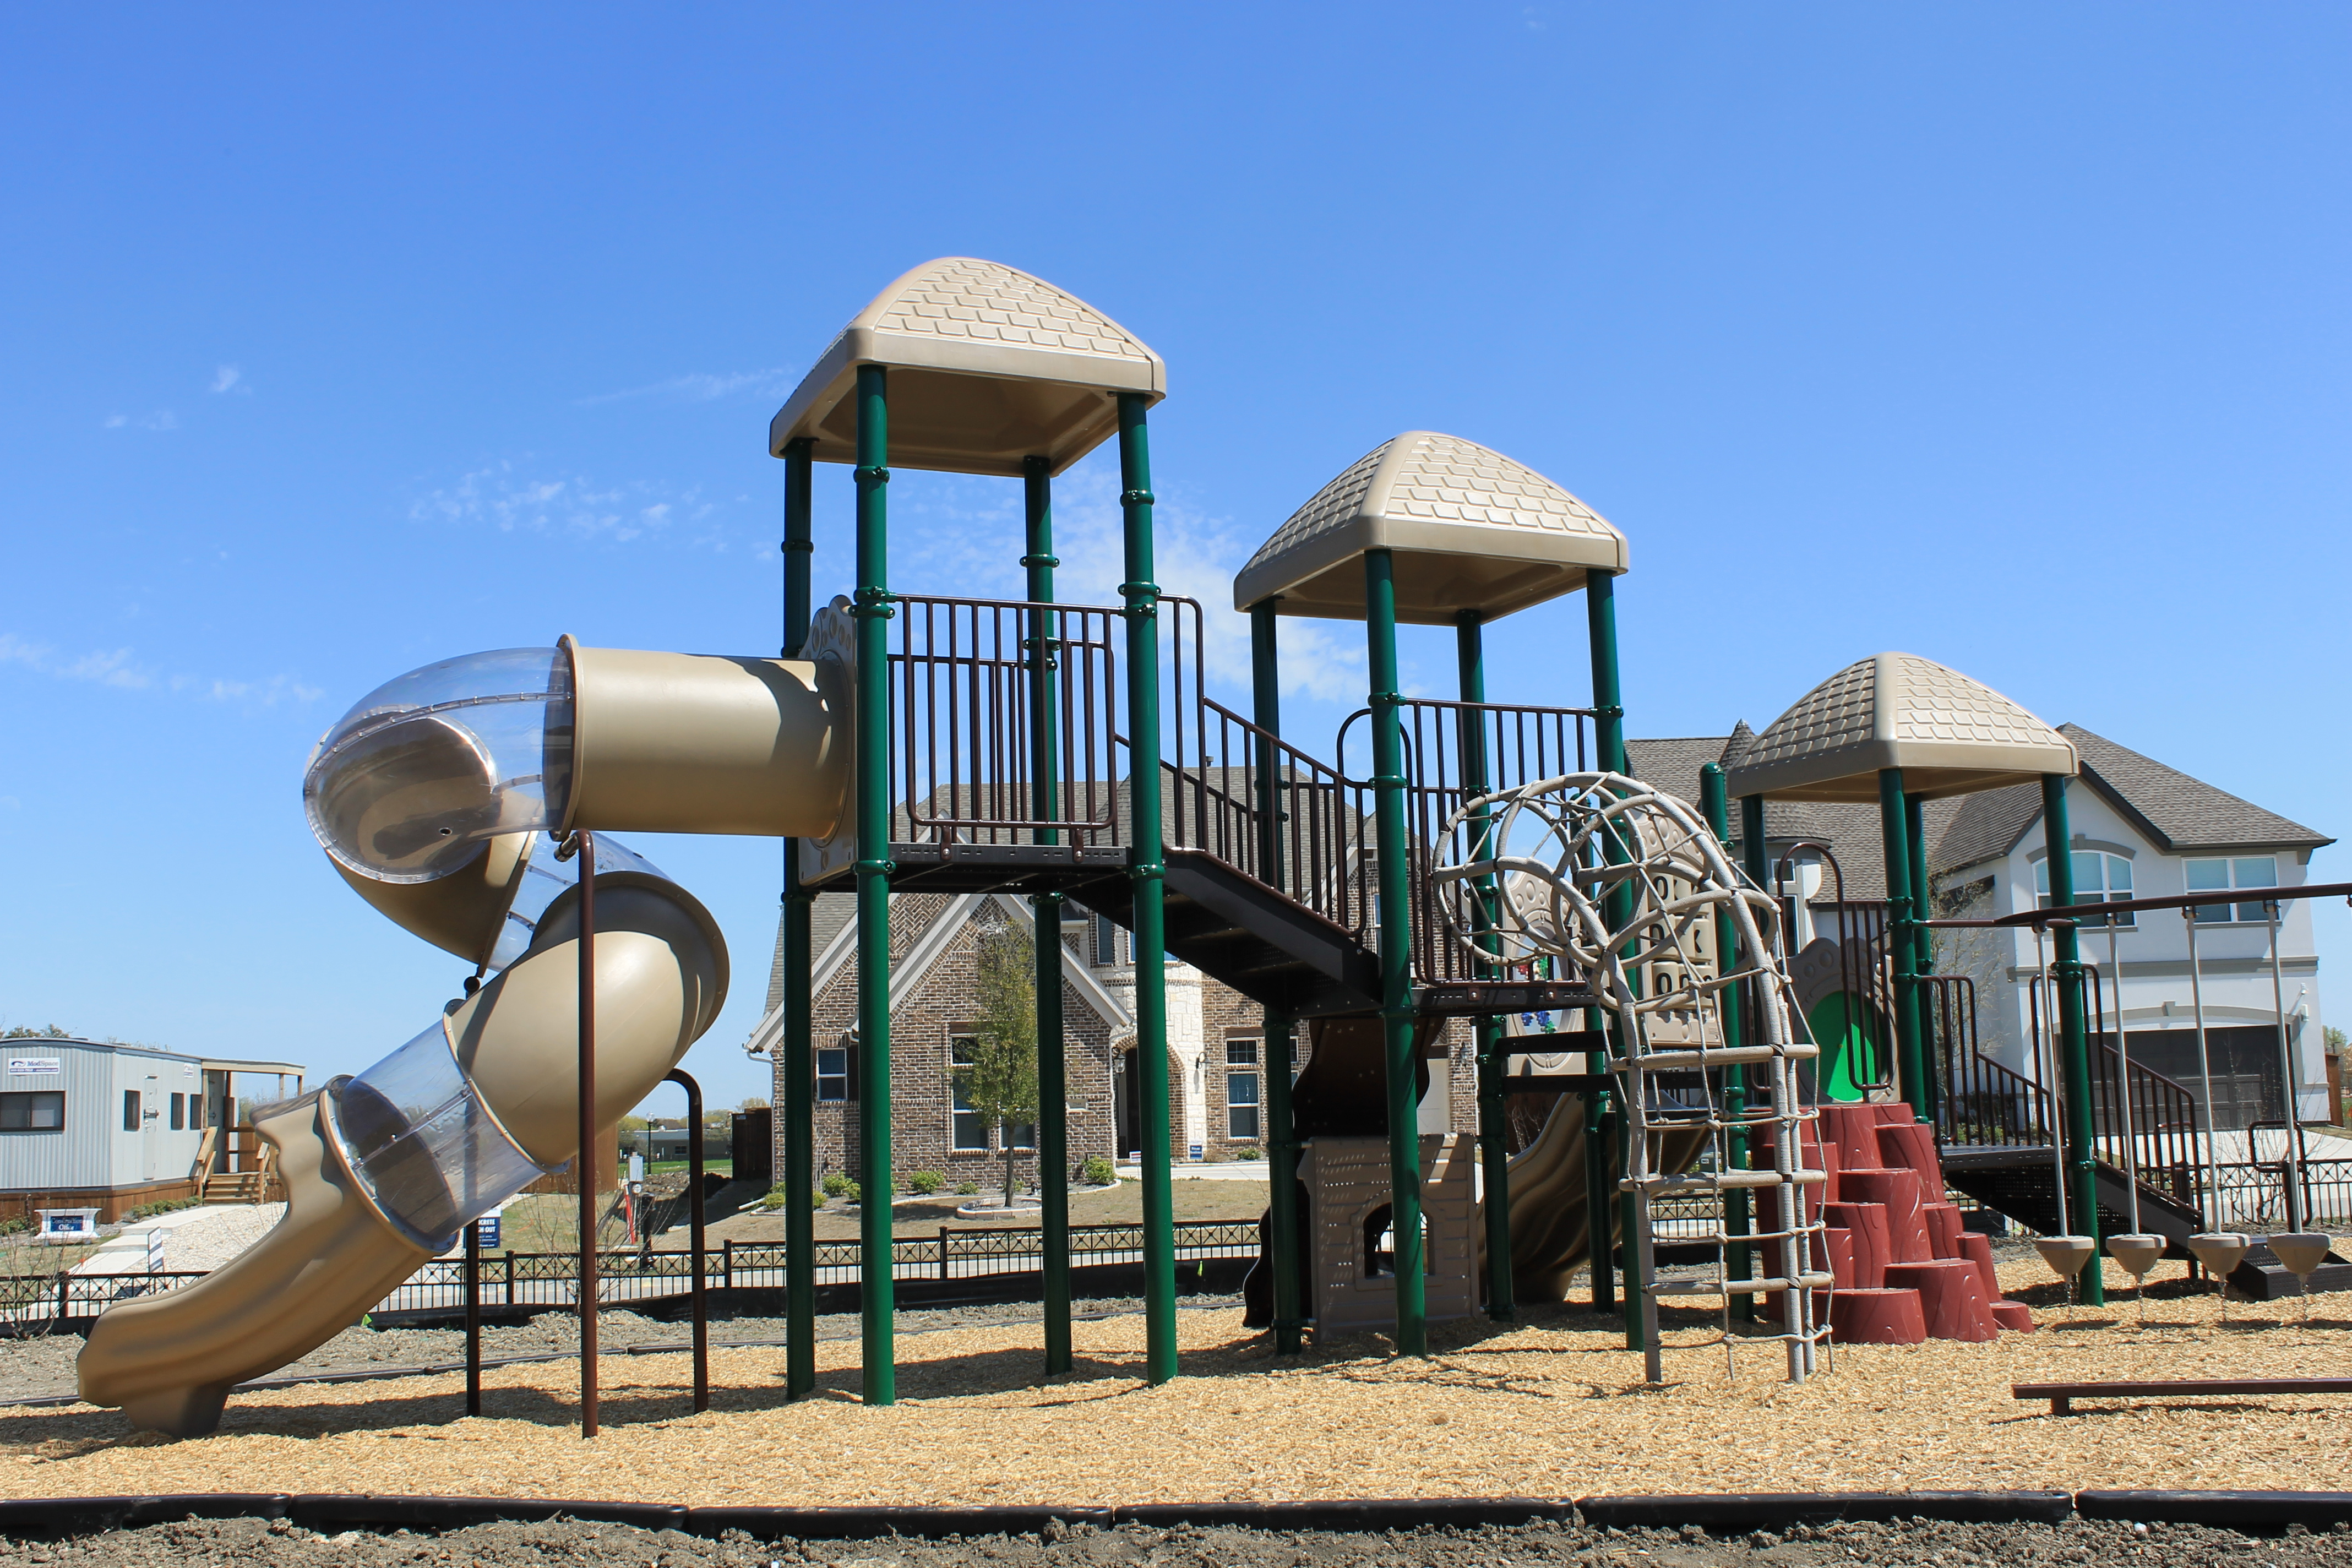 Noahs Park and Playgrounds, LLC image 3